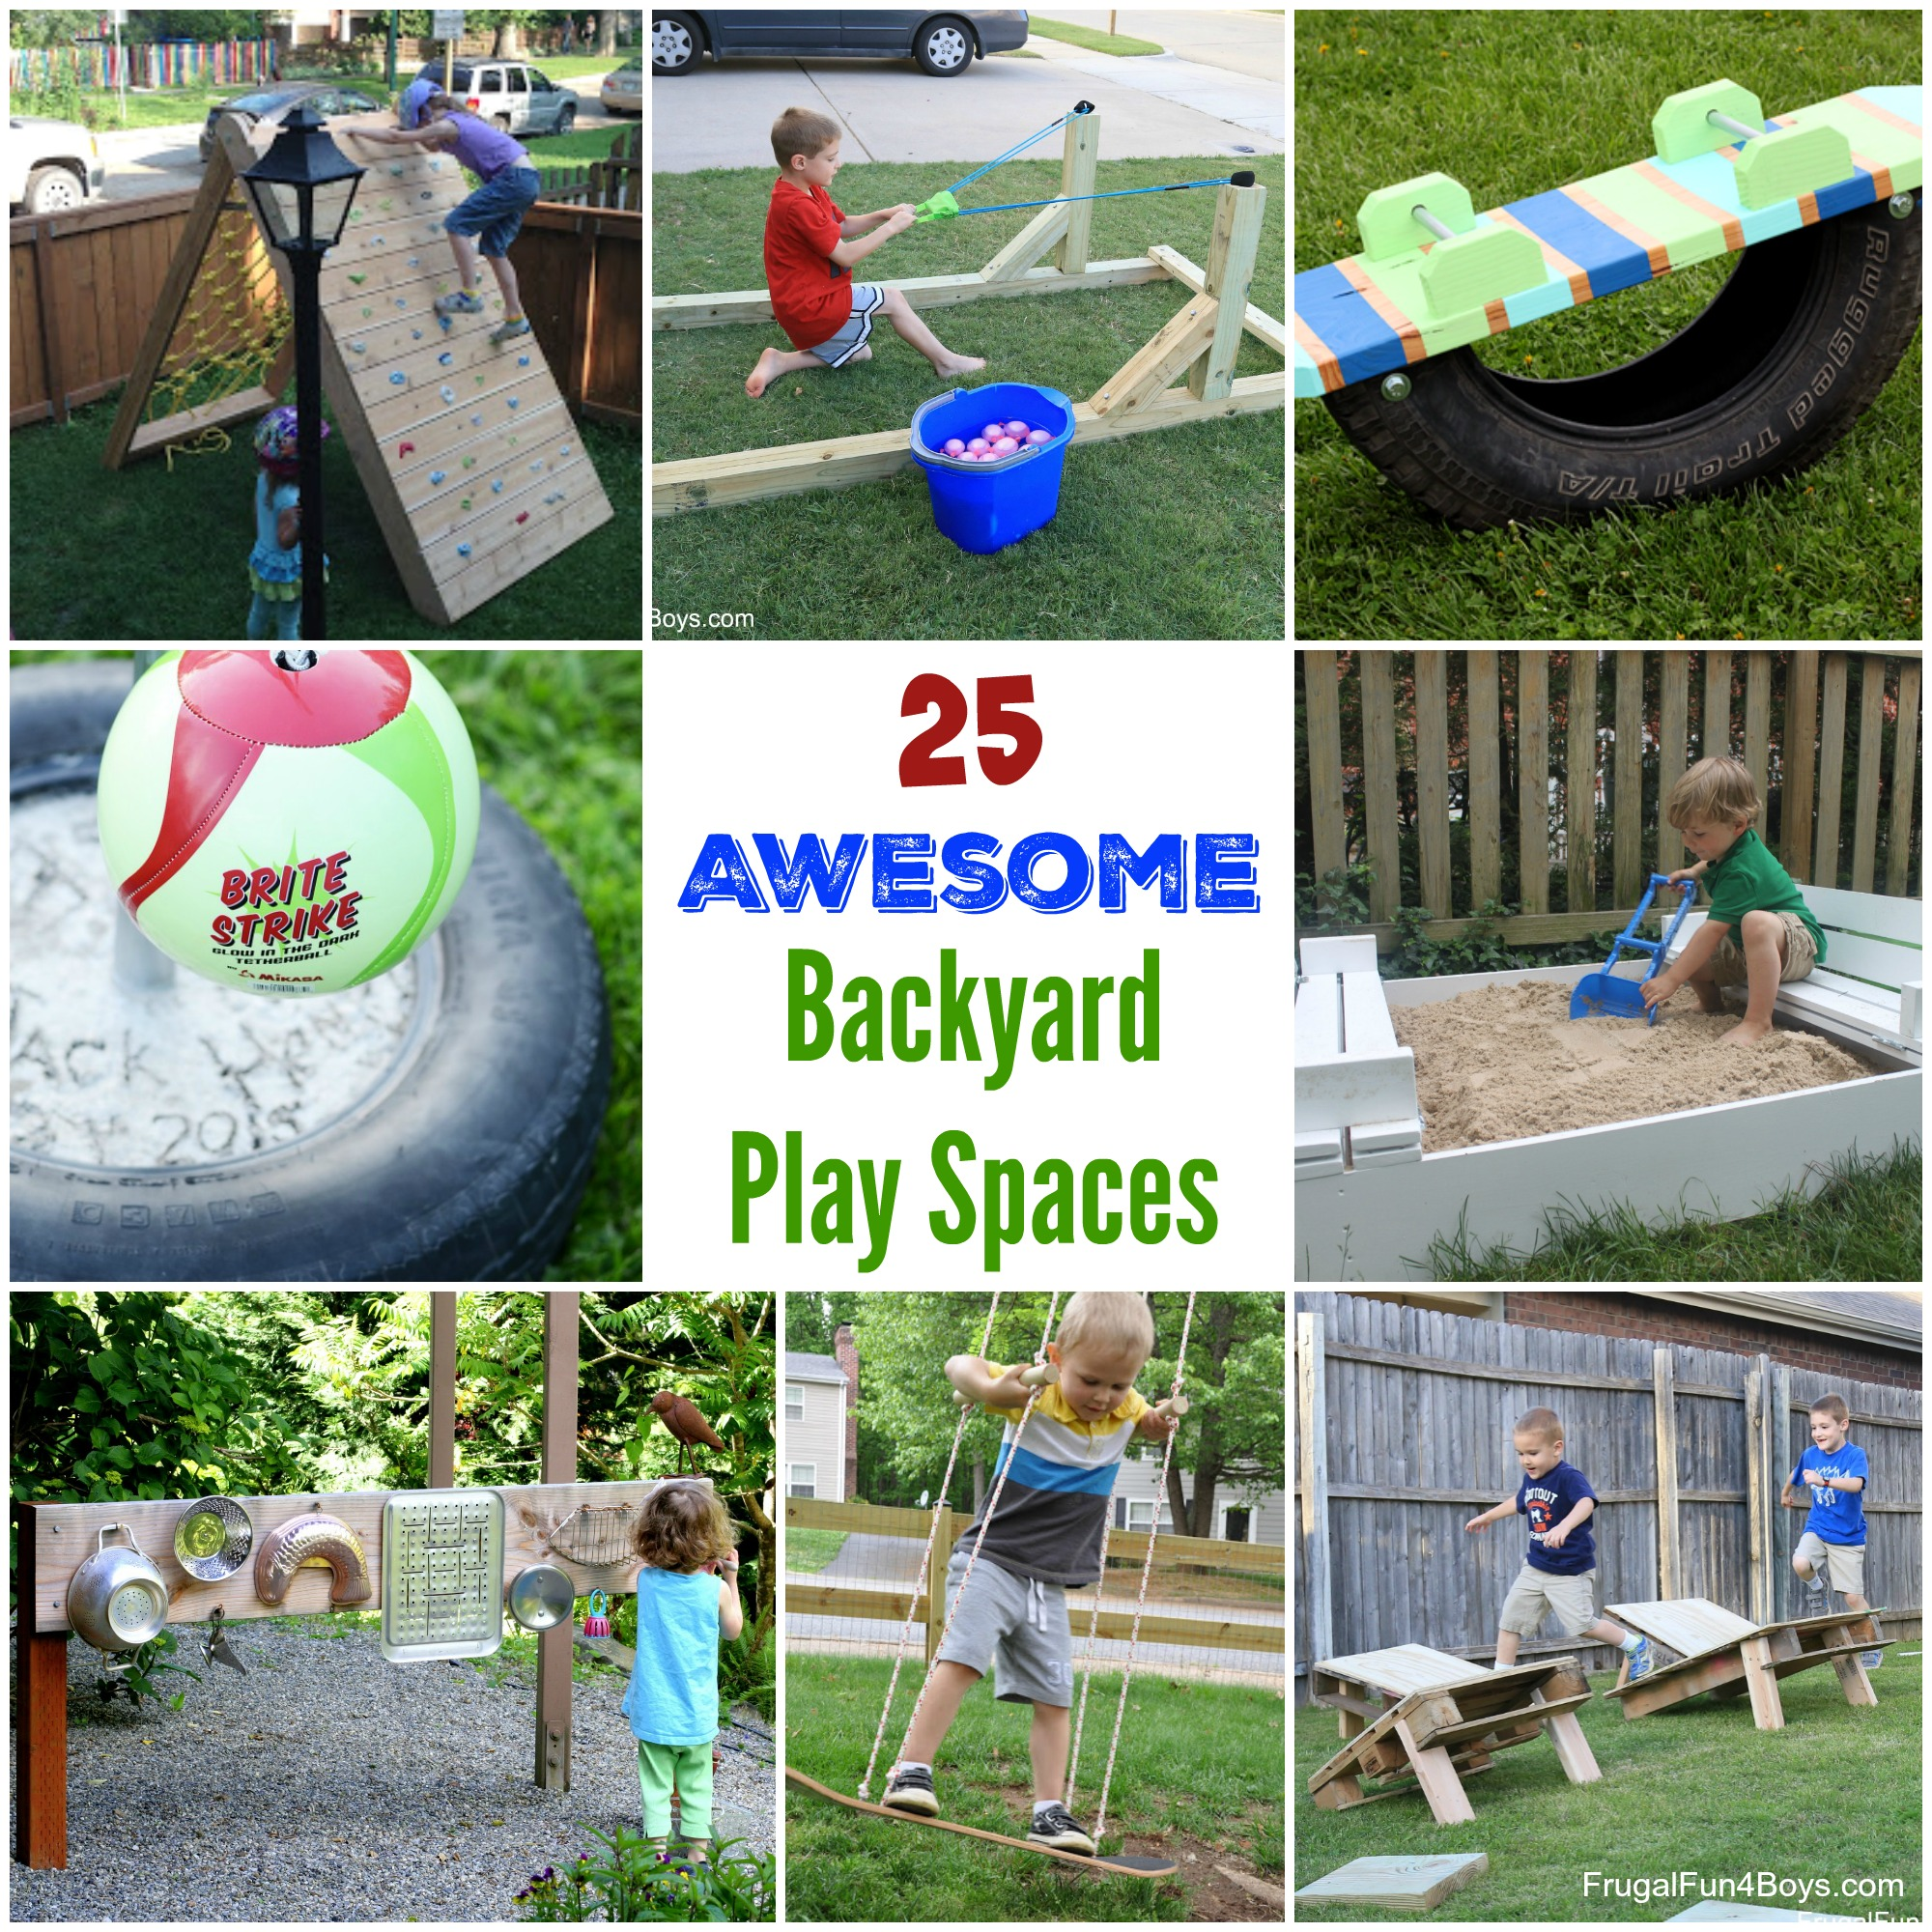 25 Awesome Backyard Play Spaces – Build climbing structures